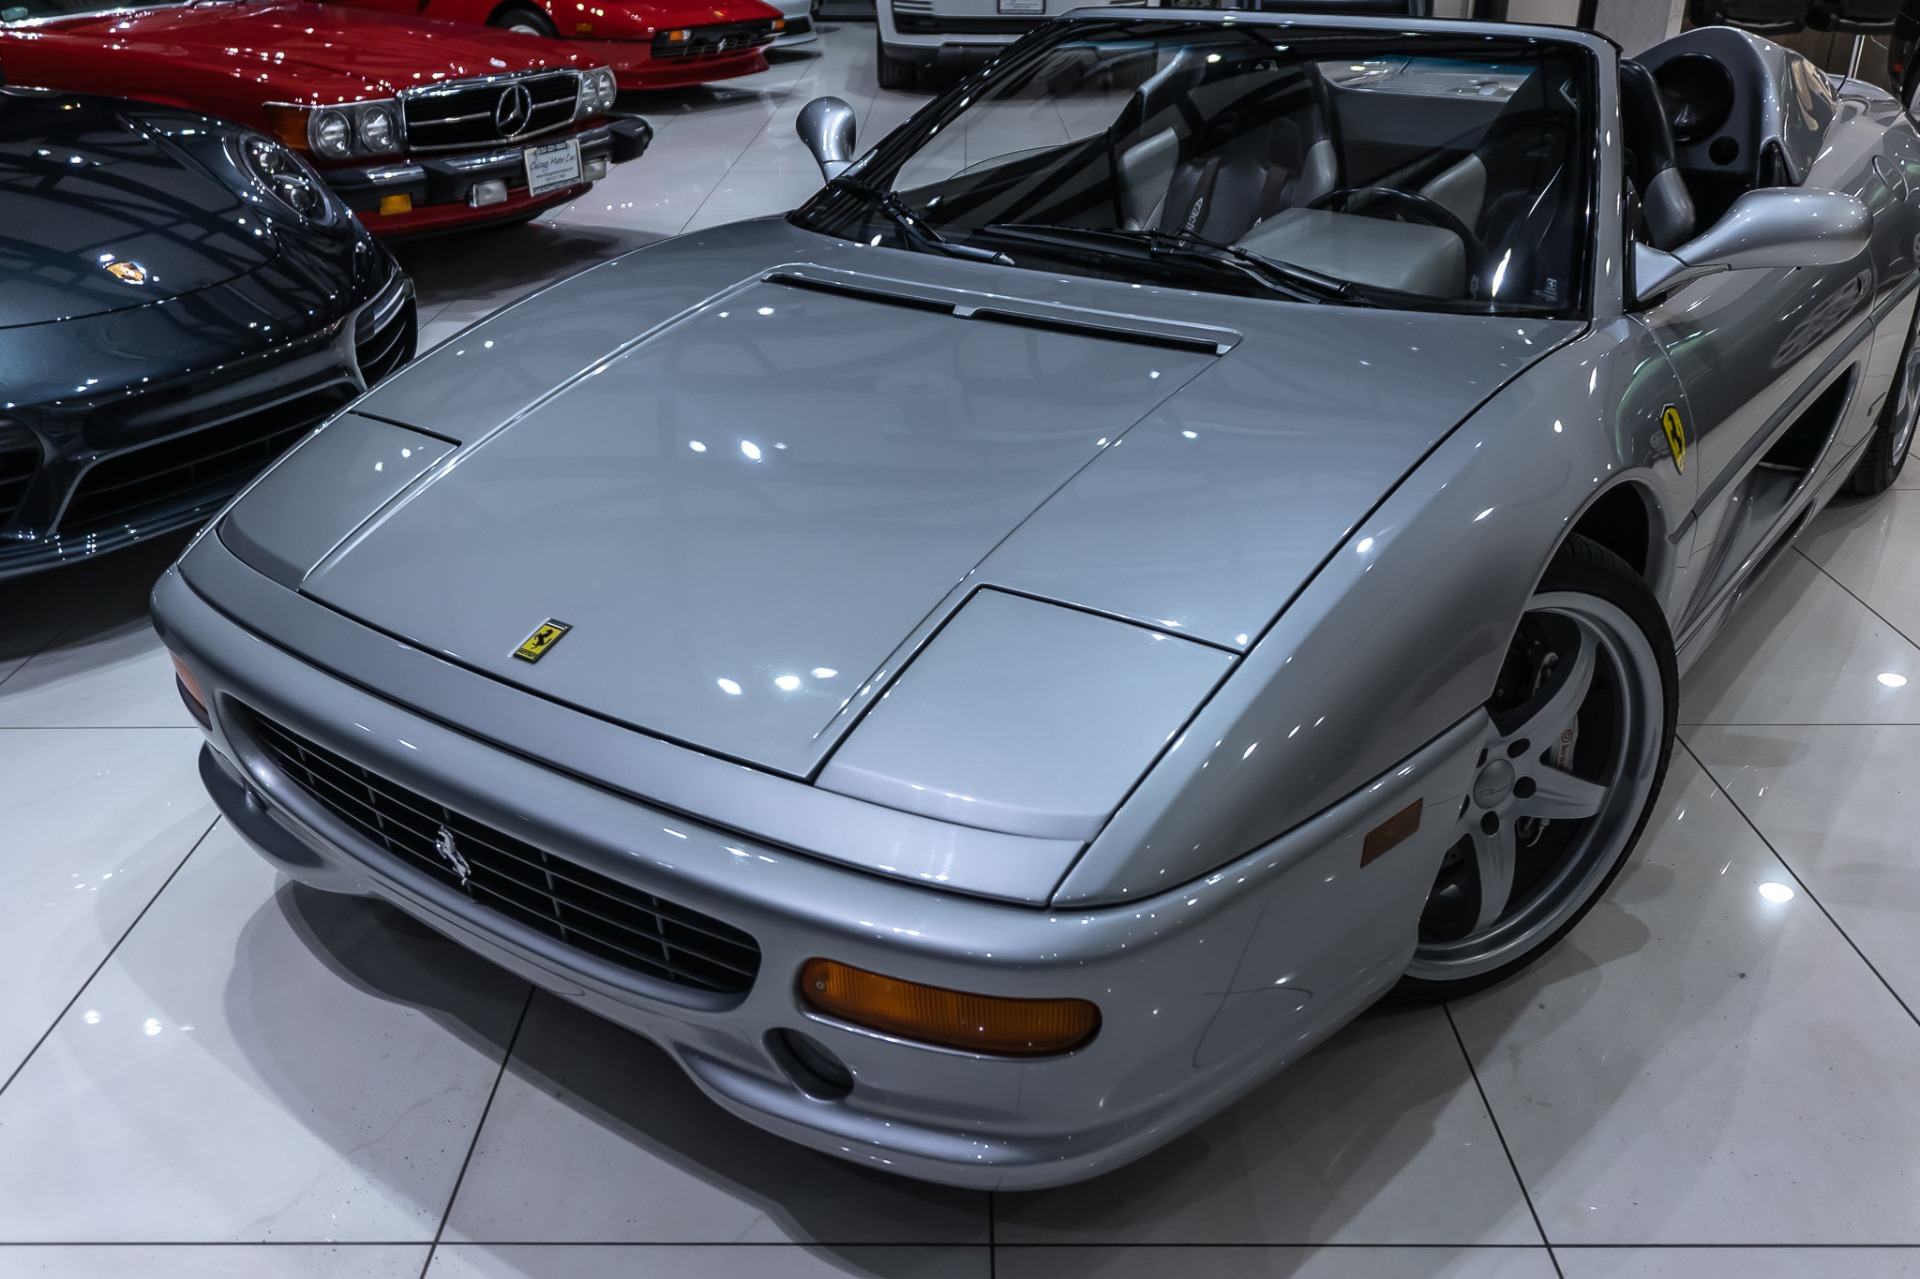 Used-1998-Ferrari-F355-Spider-Convertible-CELEBRITY-OWNED-CUSTOM-INTERIOR---SOUND-SYSTEM